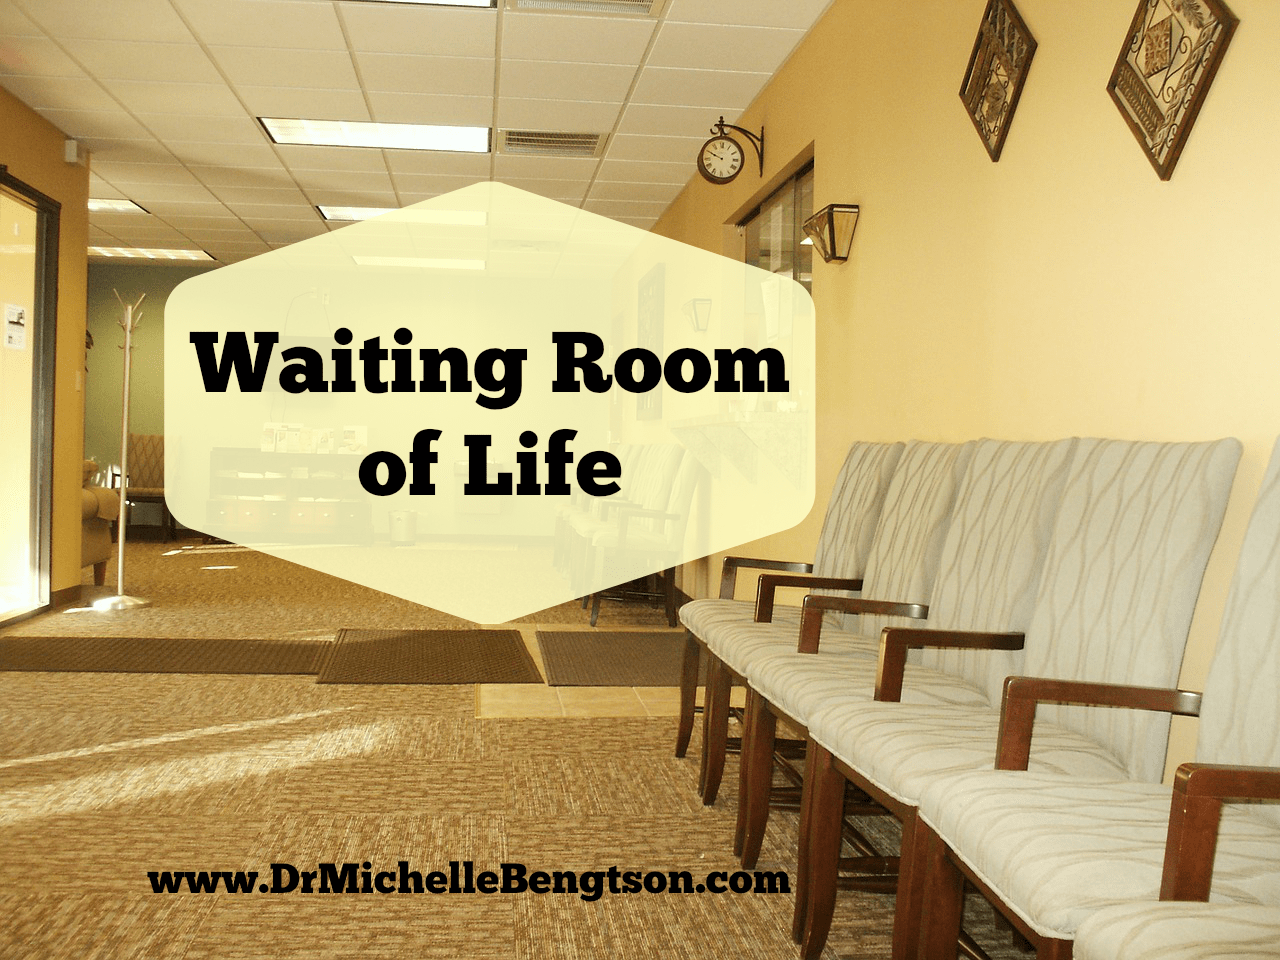 Waiting Room of Life by Dr. Michelle Bengtson